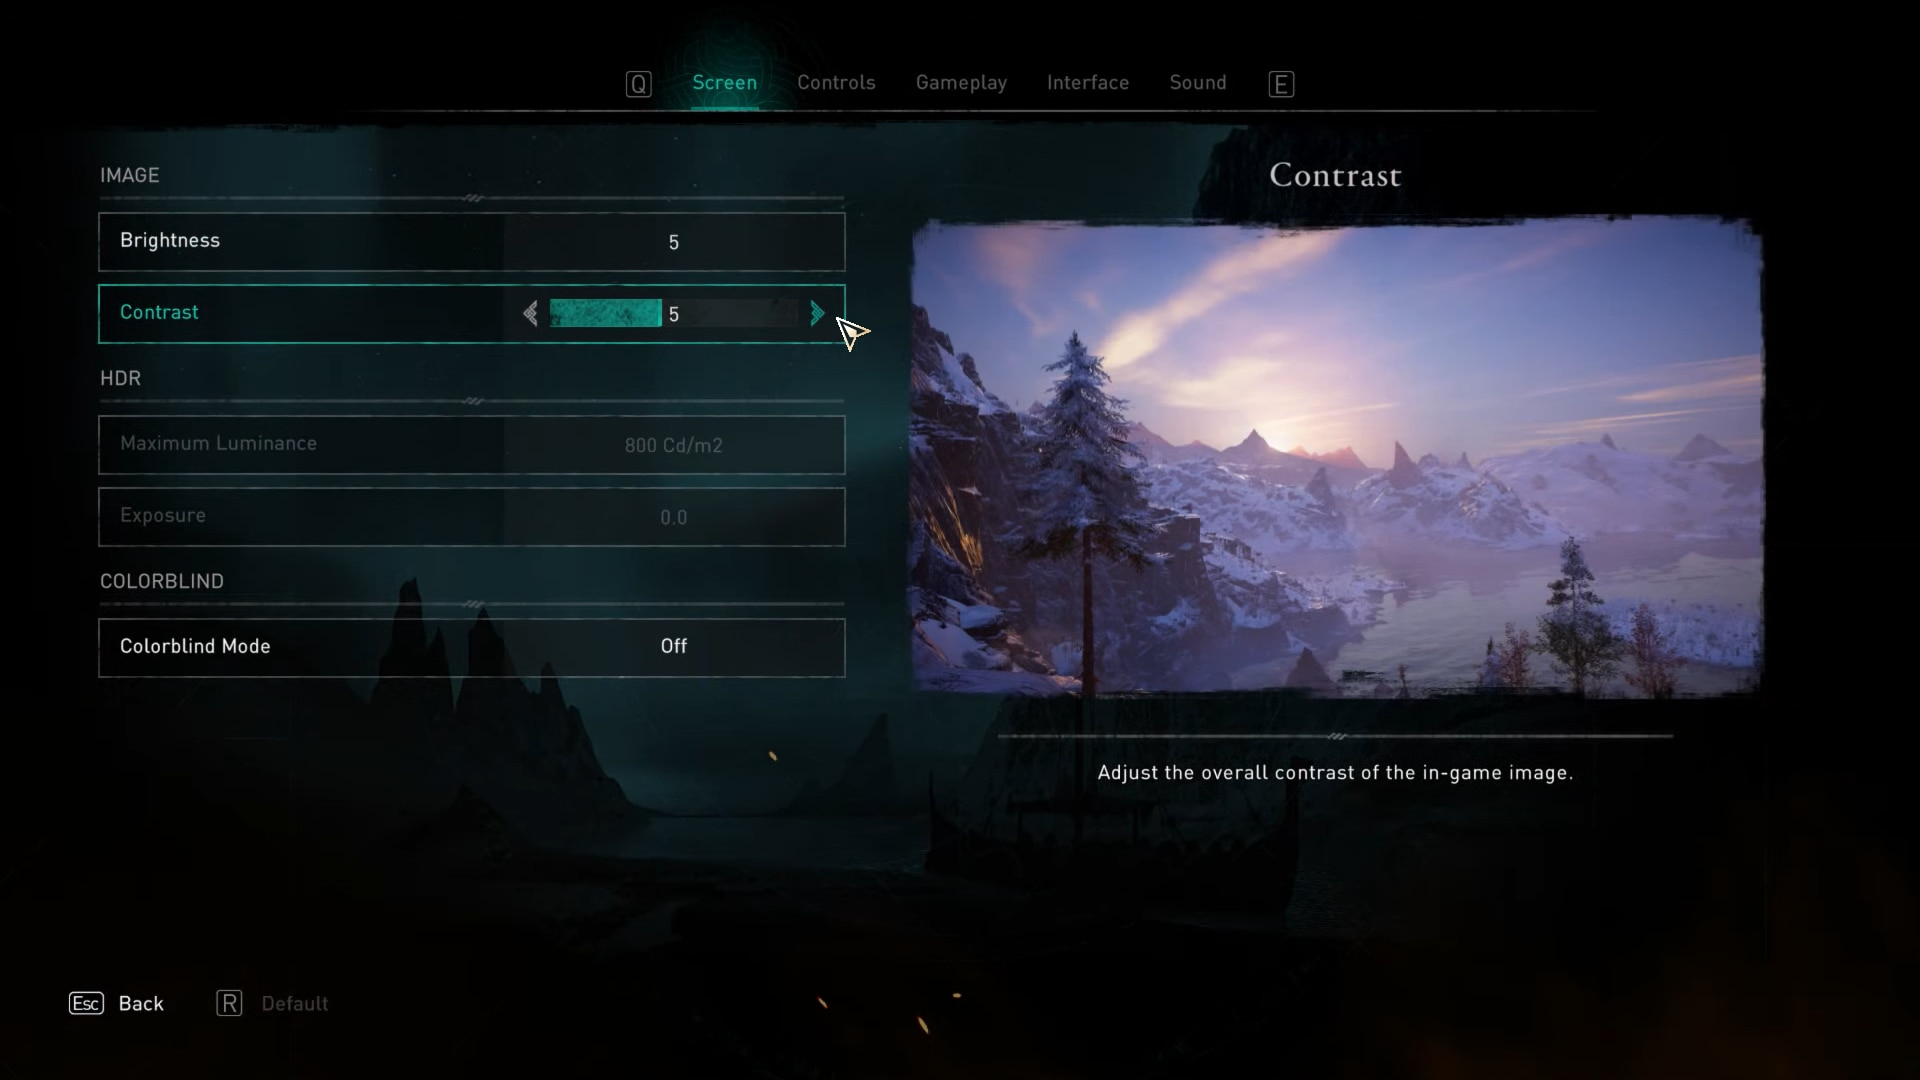 Brightness and contrast options in the screen options of Assassin's Creed Valhalla